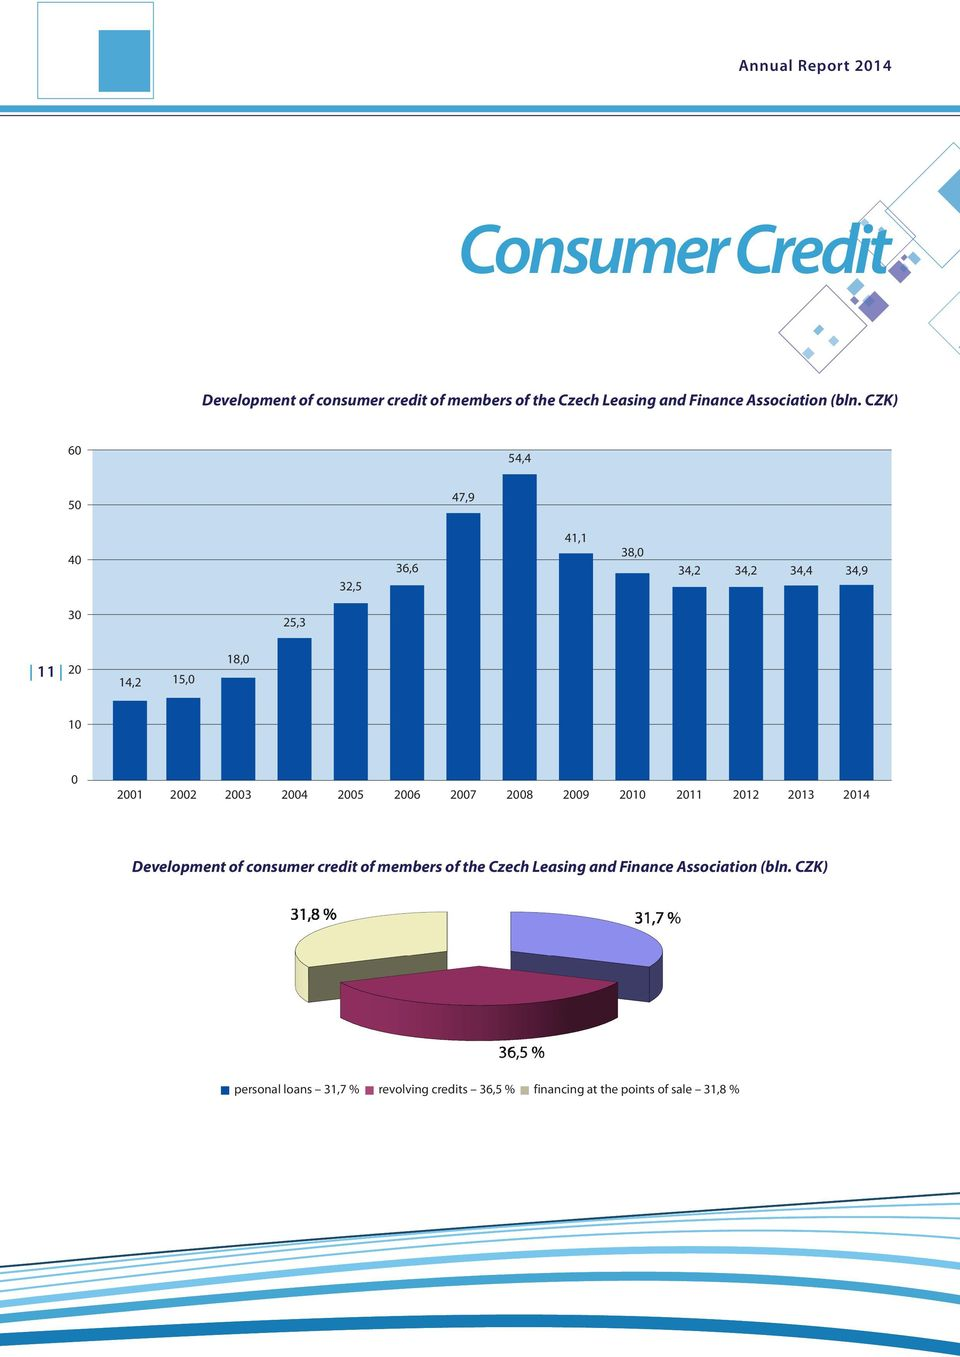 2005 2006 2007 2008 2009 2010 2011 2012 2013 2014 Development of consumer credit of members of the Czech Leasing and